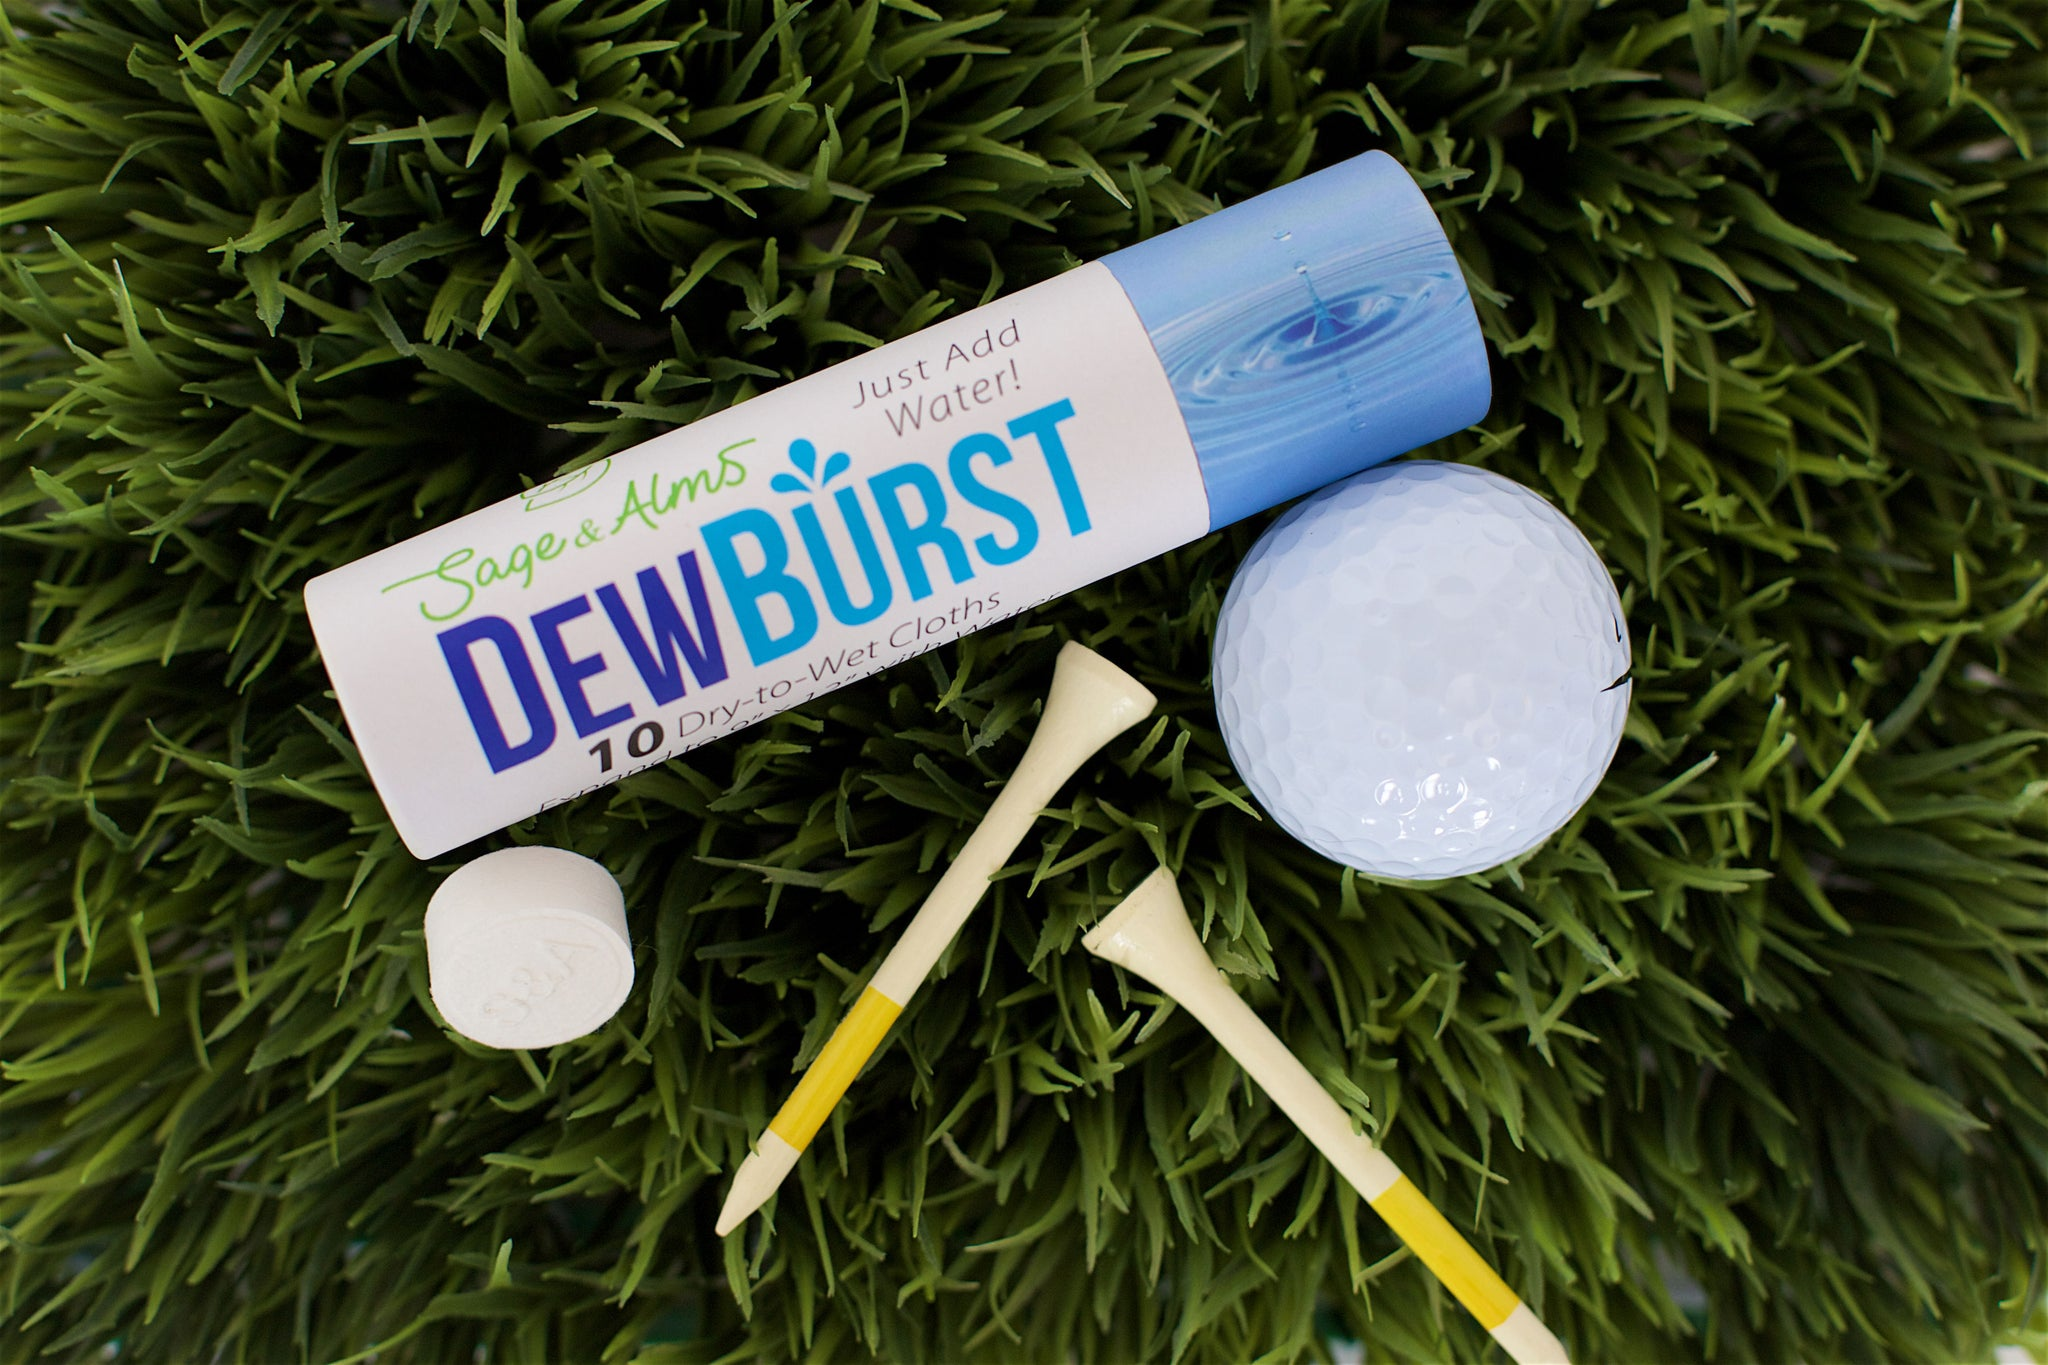 6 Tubes | 60 Cloths | $3.00 Per Tube | DewBurst